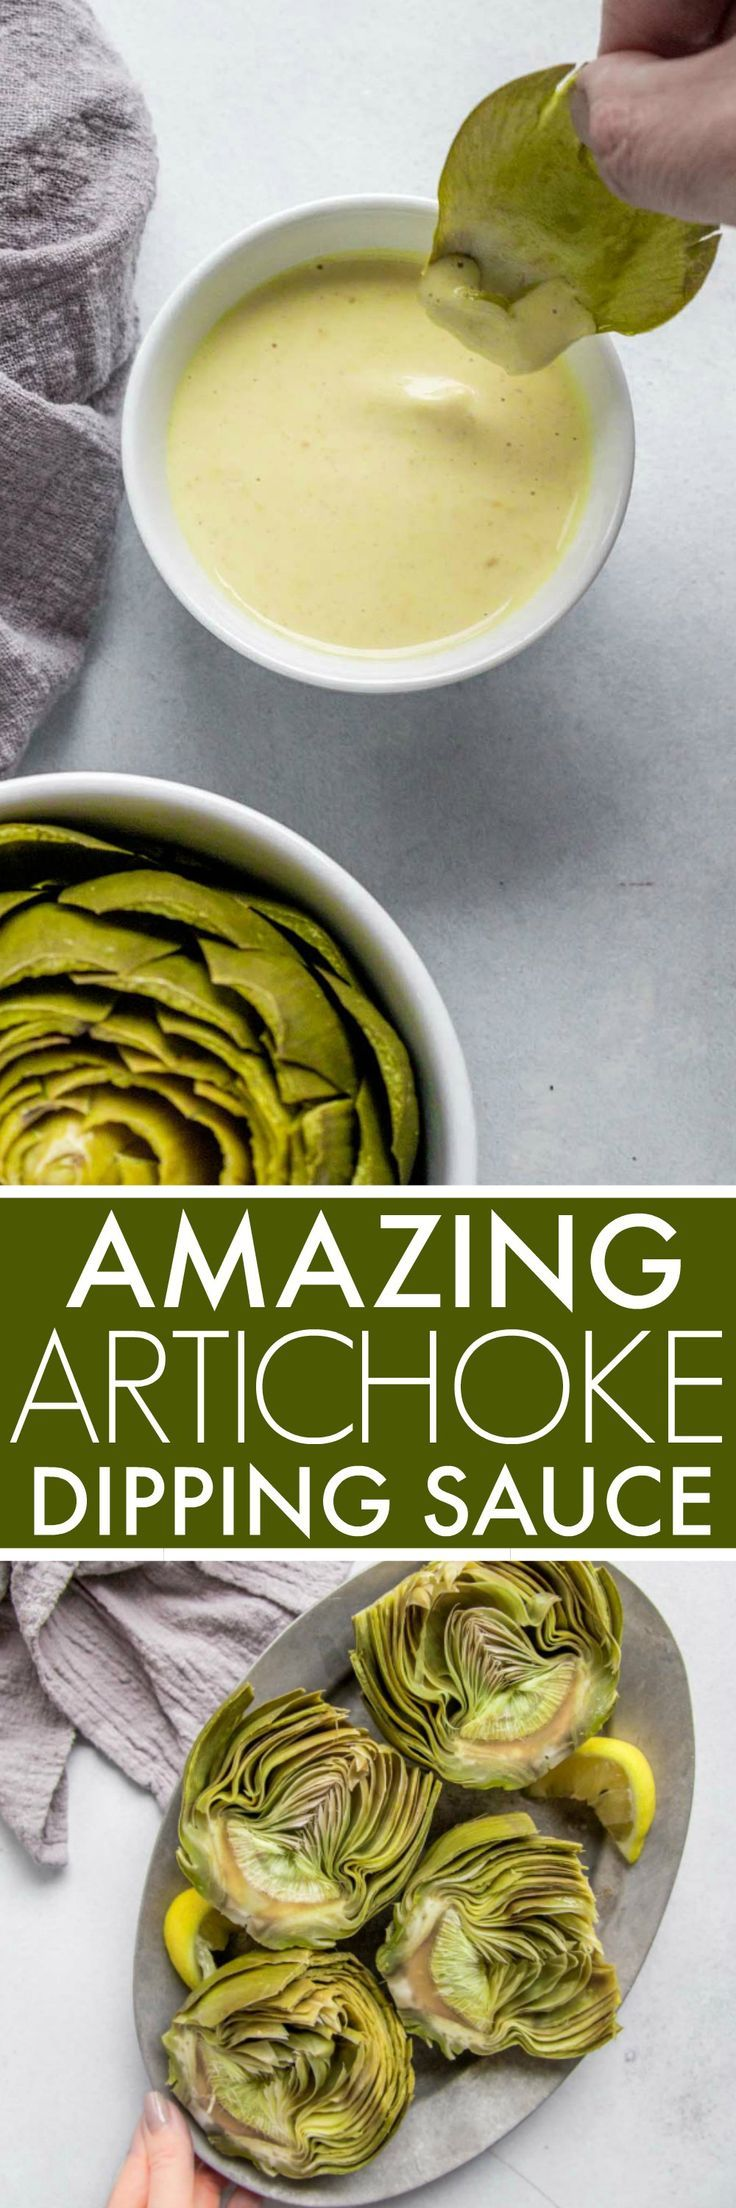 This Artichoke Dipping Sauce is amazing!  It turns even the pickiest eater into a steamed artichoke lover and is made with ingredients that you probably already have on hand.  via @platingspairing